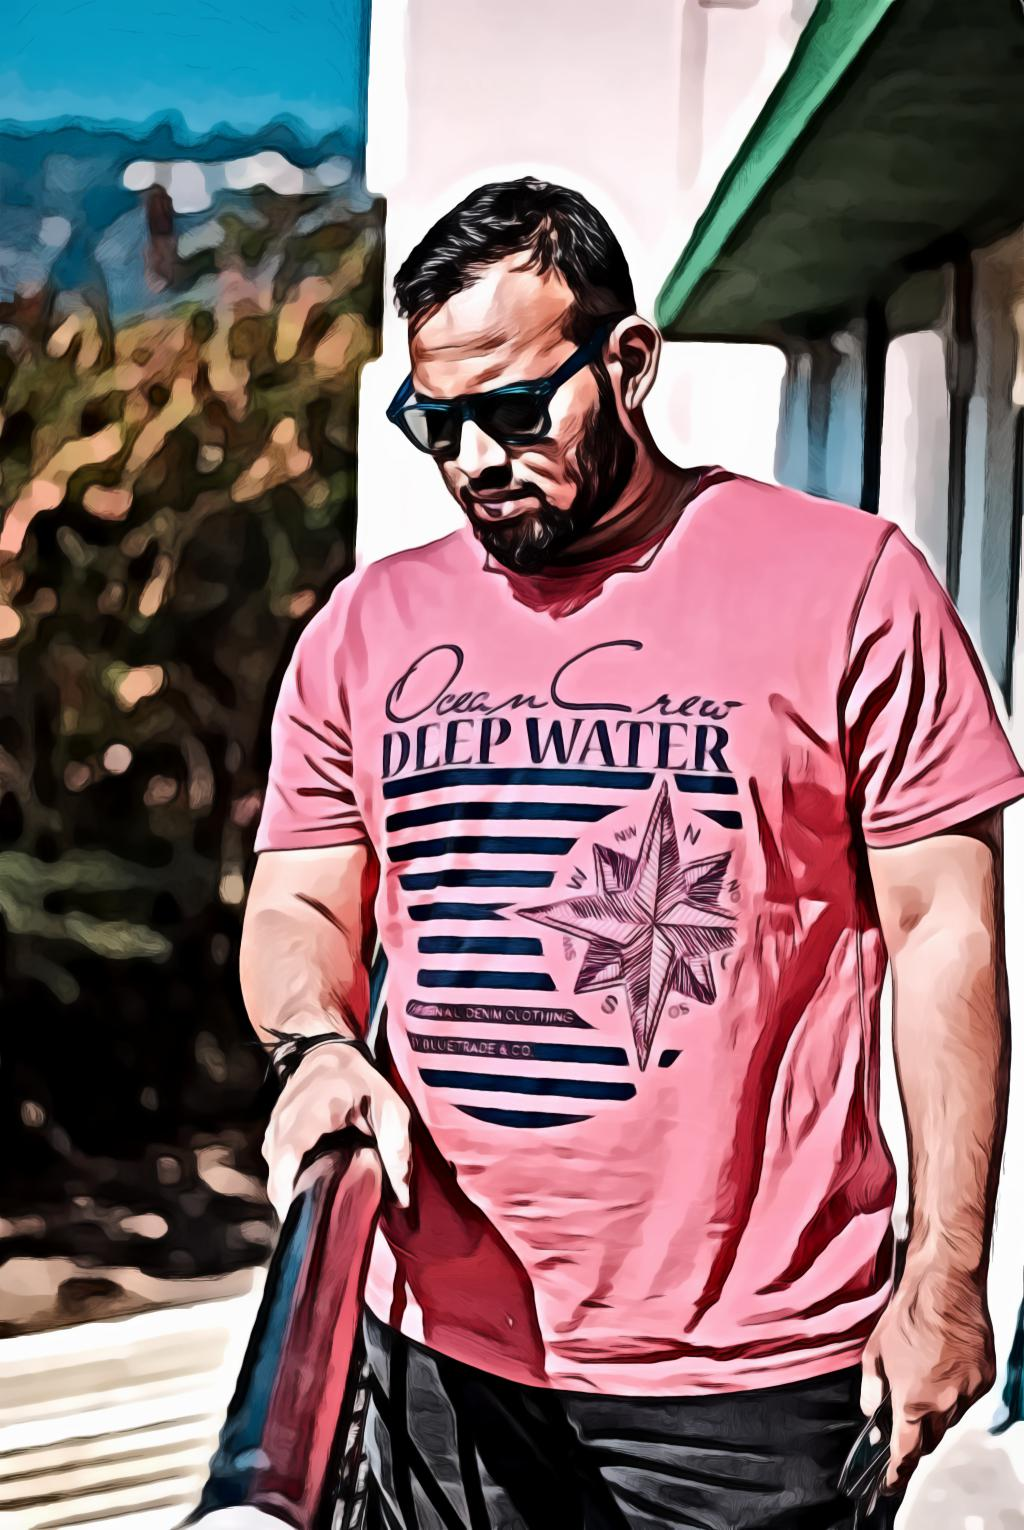 Man in red crew neck t shirt wearing sunglasses